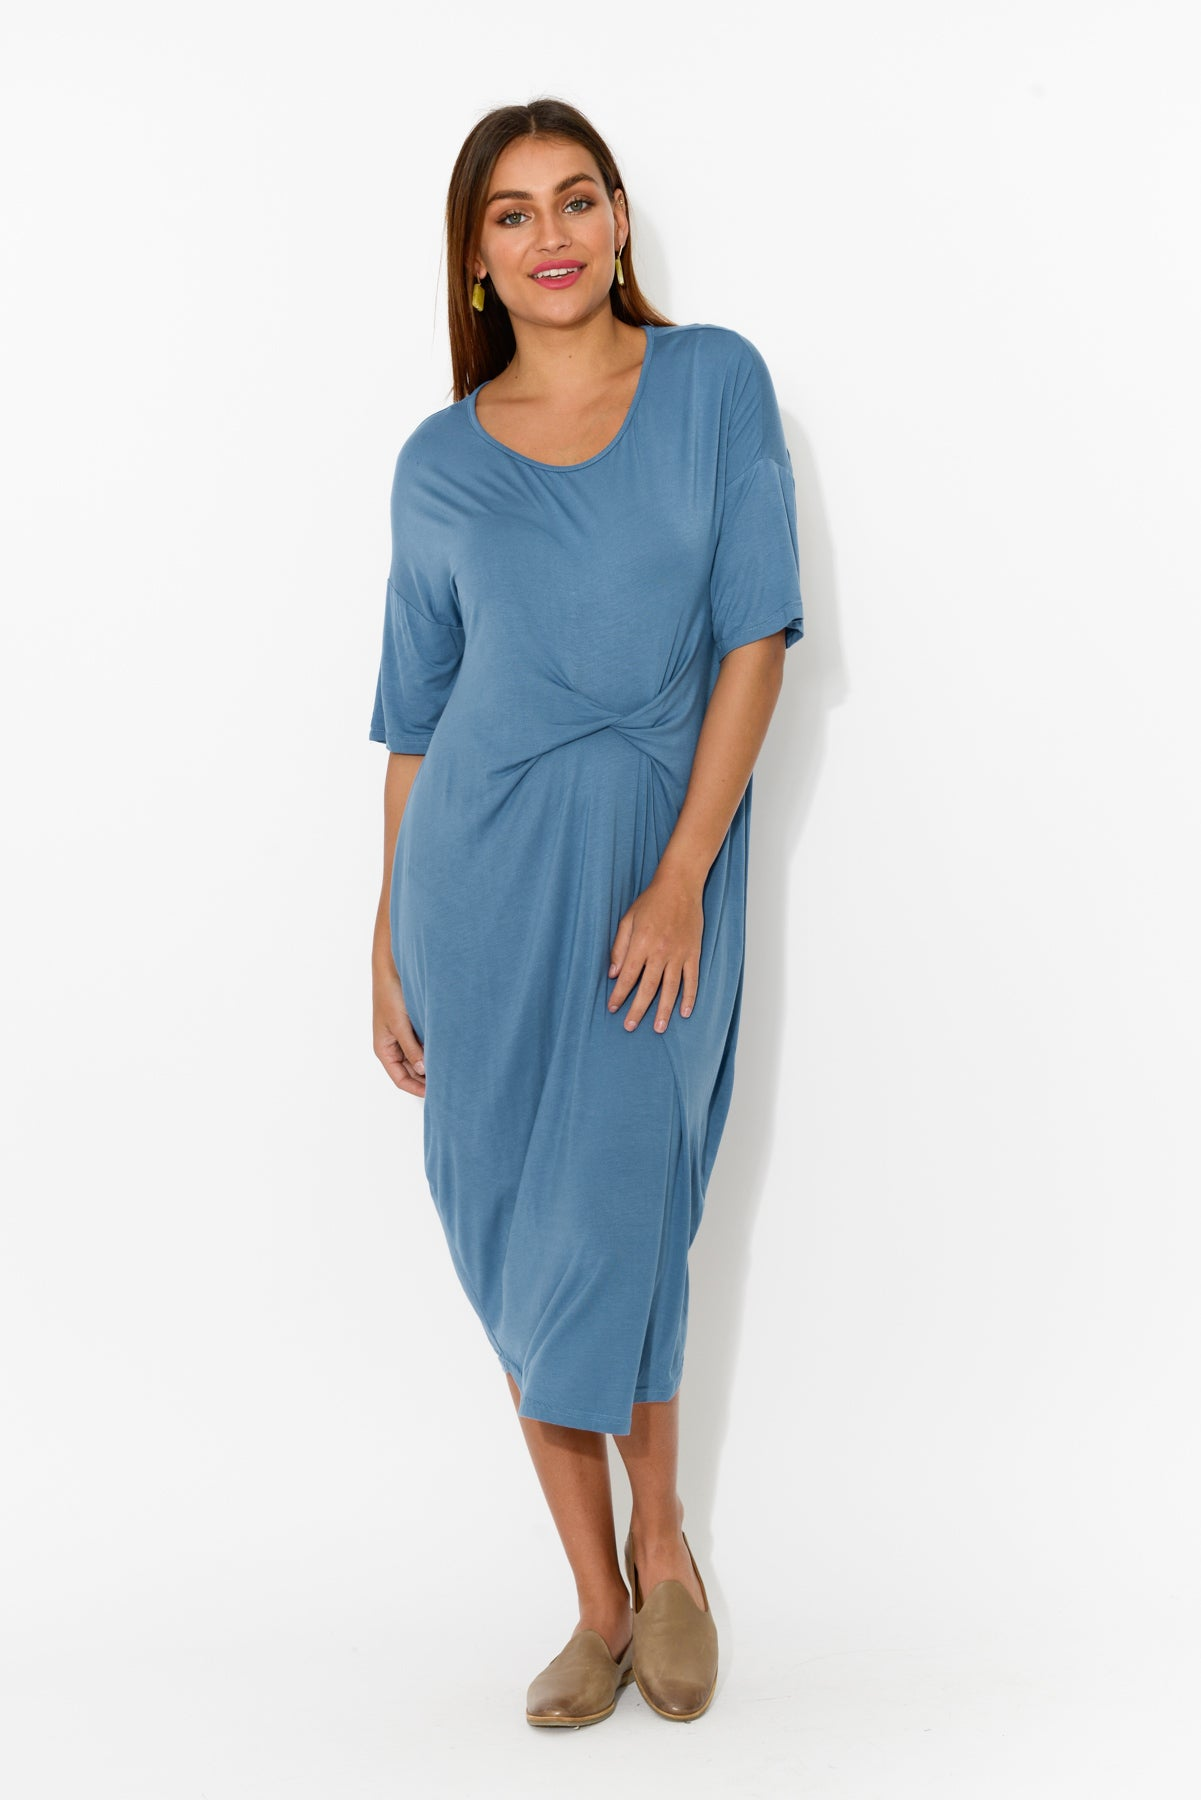 Emmy Blue Twist Front Dress - Blue Bungalow